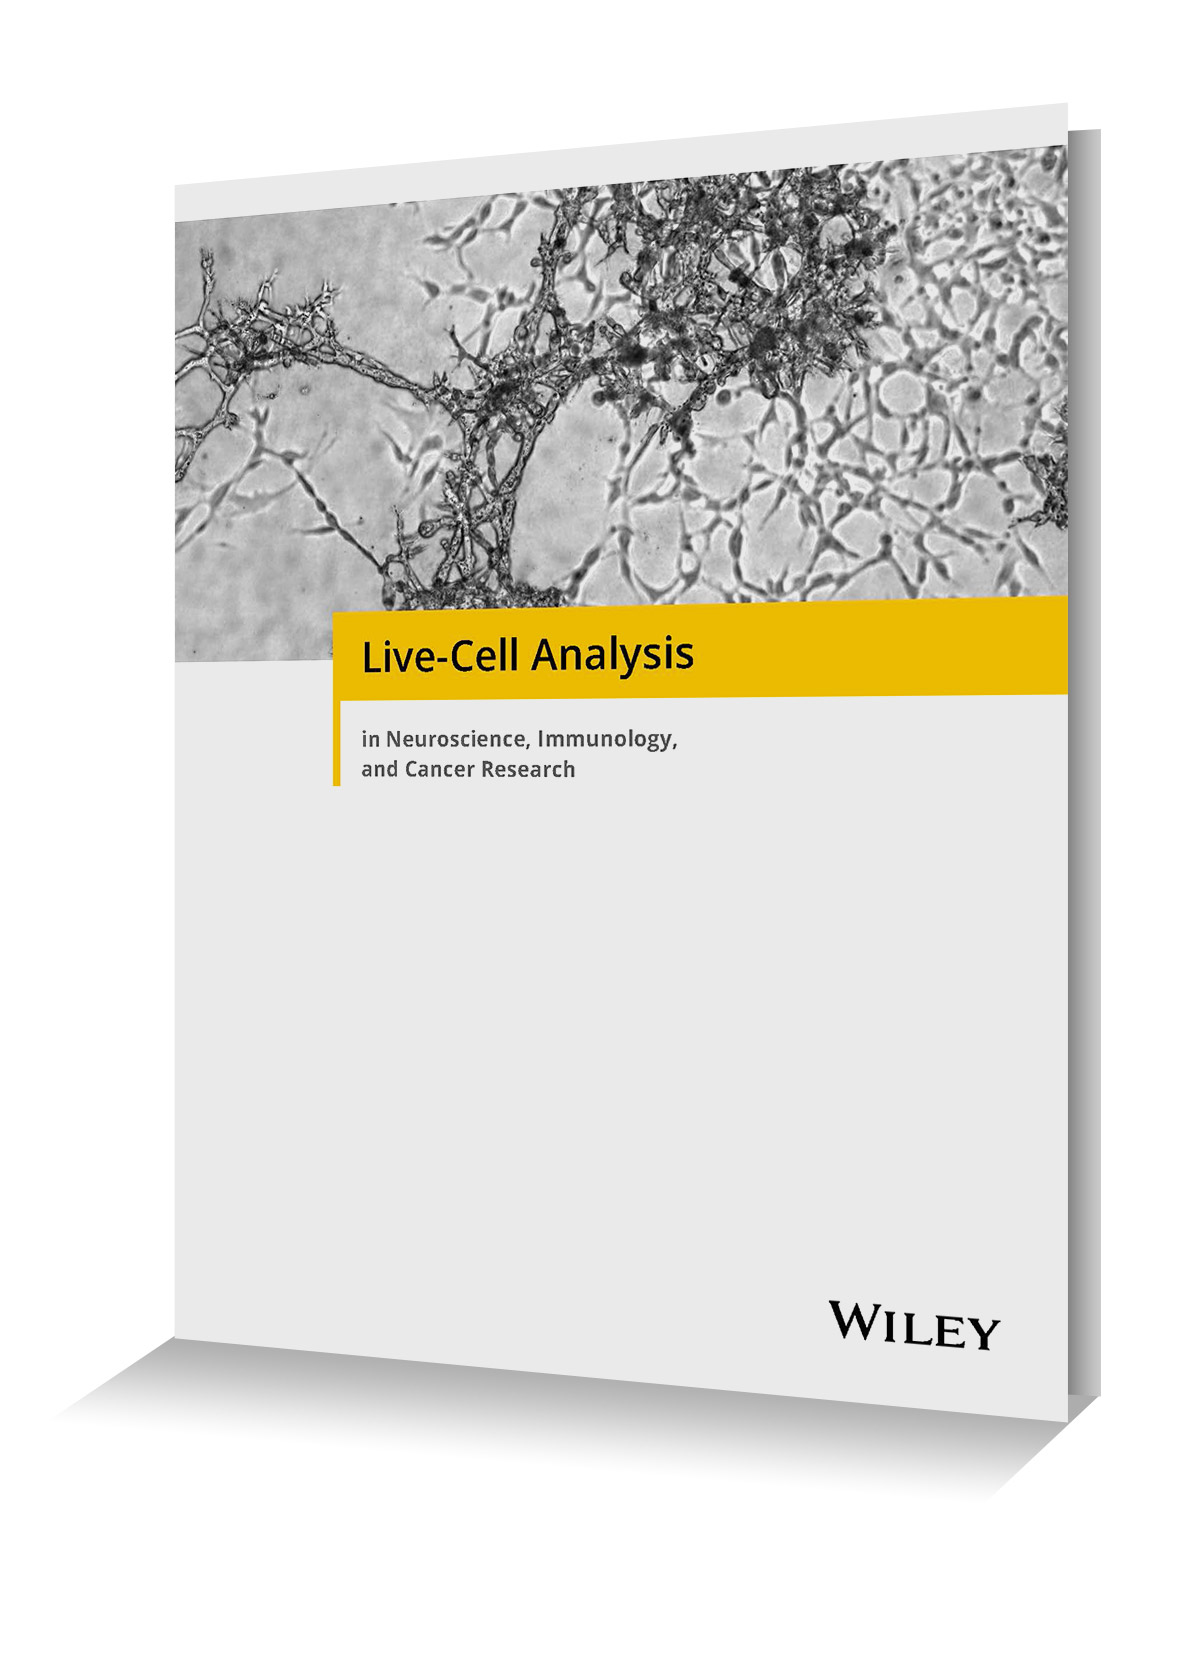 eBook: Real-time Live-Cell Analysis: Applications in Neuroscience, Immunology, and Tumour Research